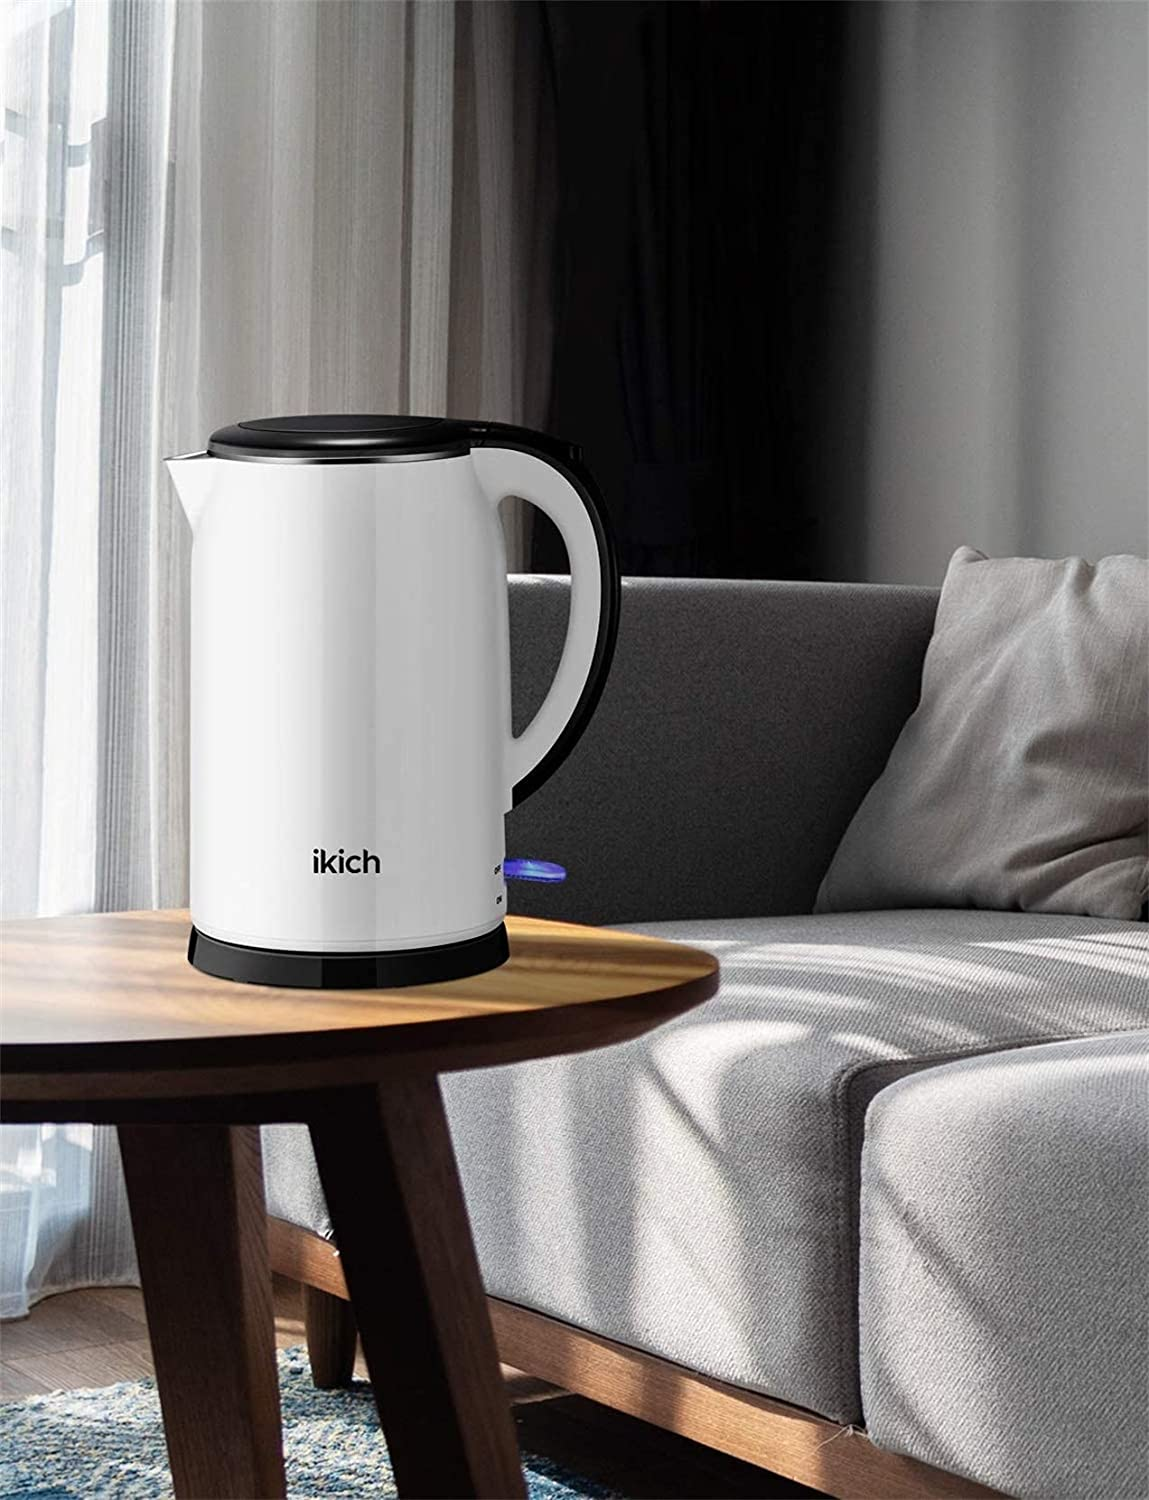 White IKICH Stainless Steel Electric Kettle LED Indicator 1.5L Double Wall Cool Touch Water Boiler 2000W BPA-free Cordless Water Kettle with Auto-shutoff /& Boil-dry Protection Collectable Cable